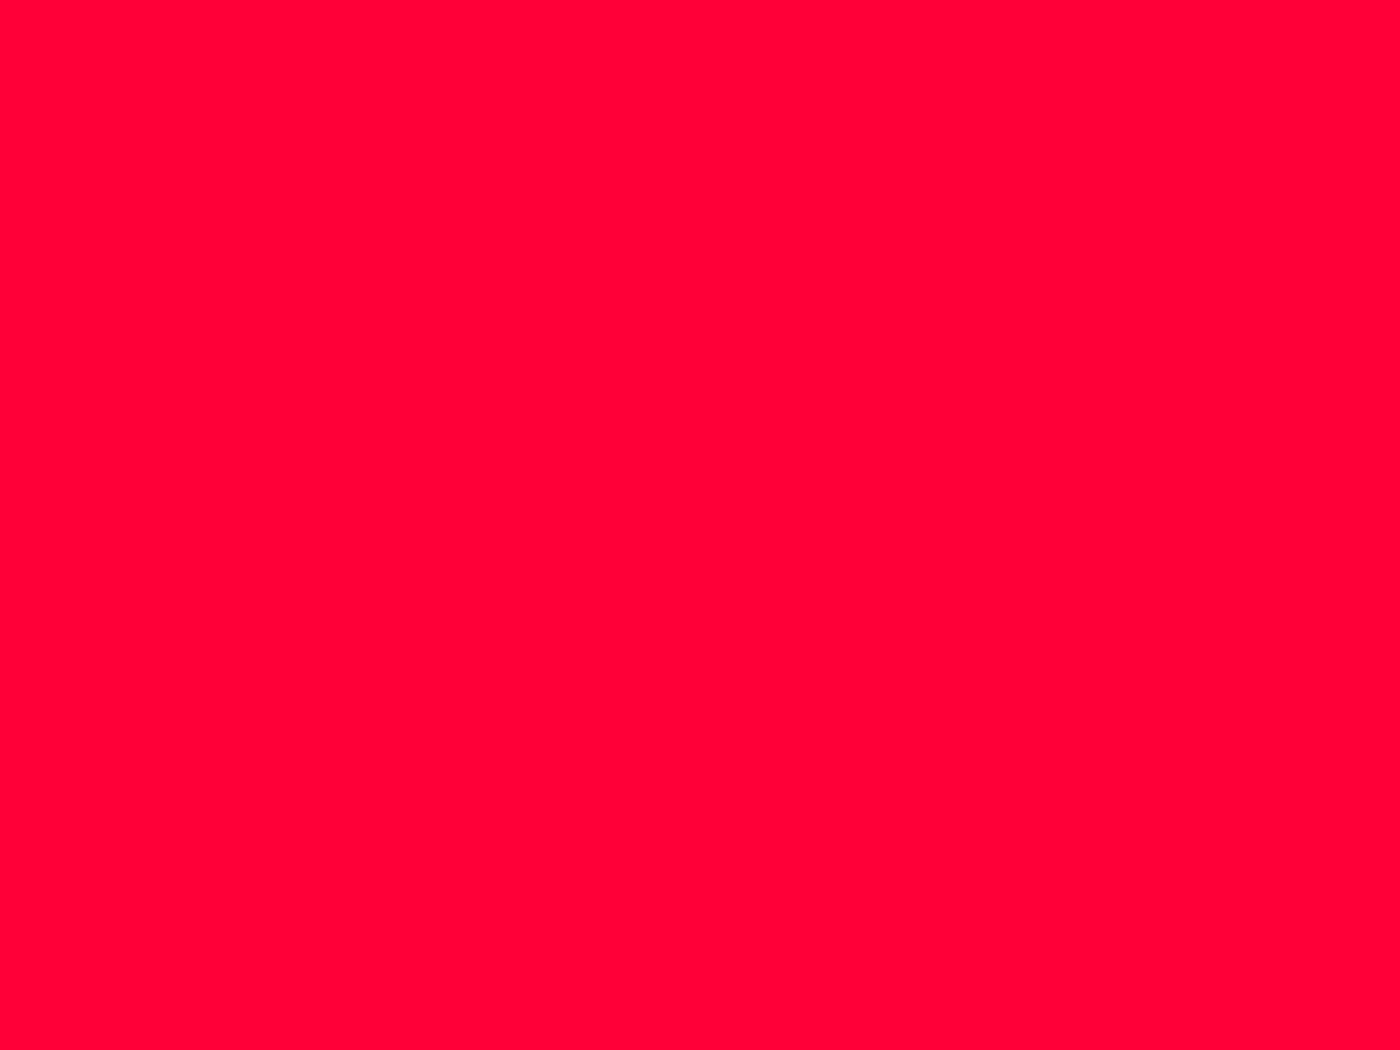 1400x1050 Carmine Red Solid Color Background